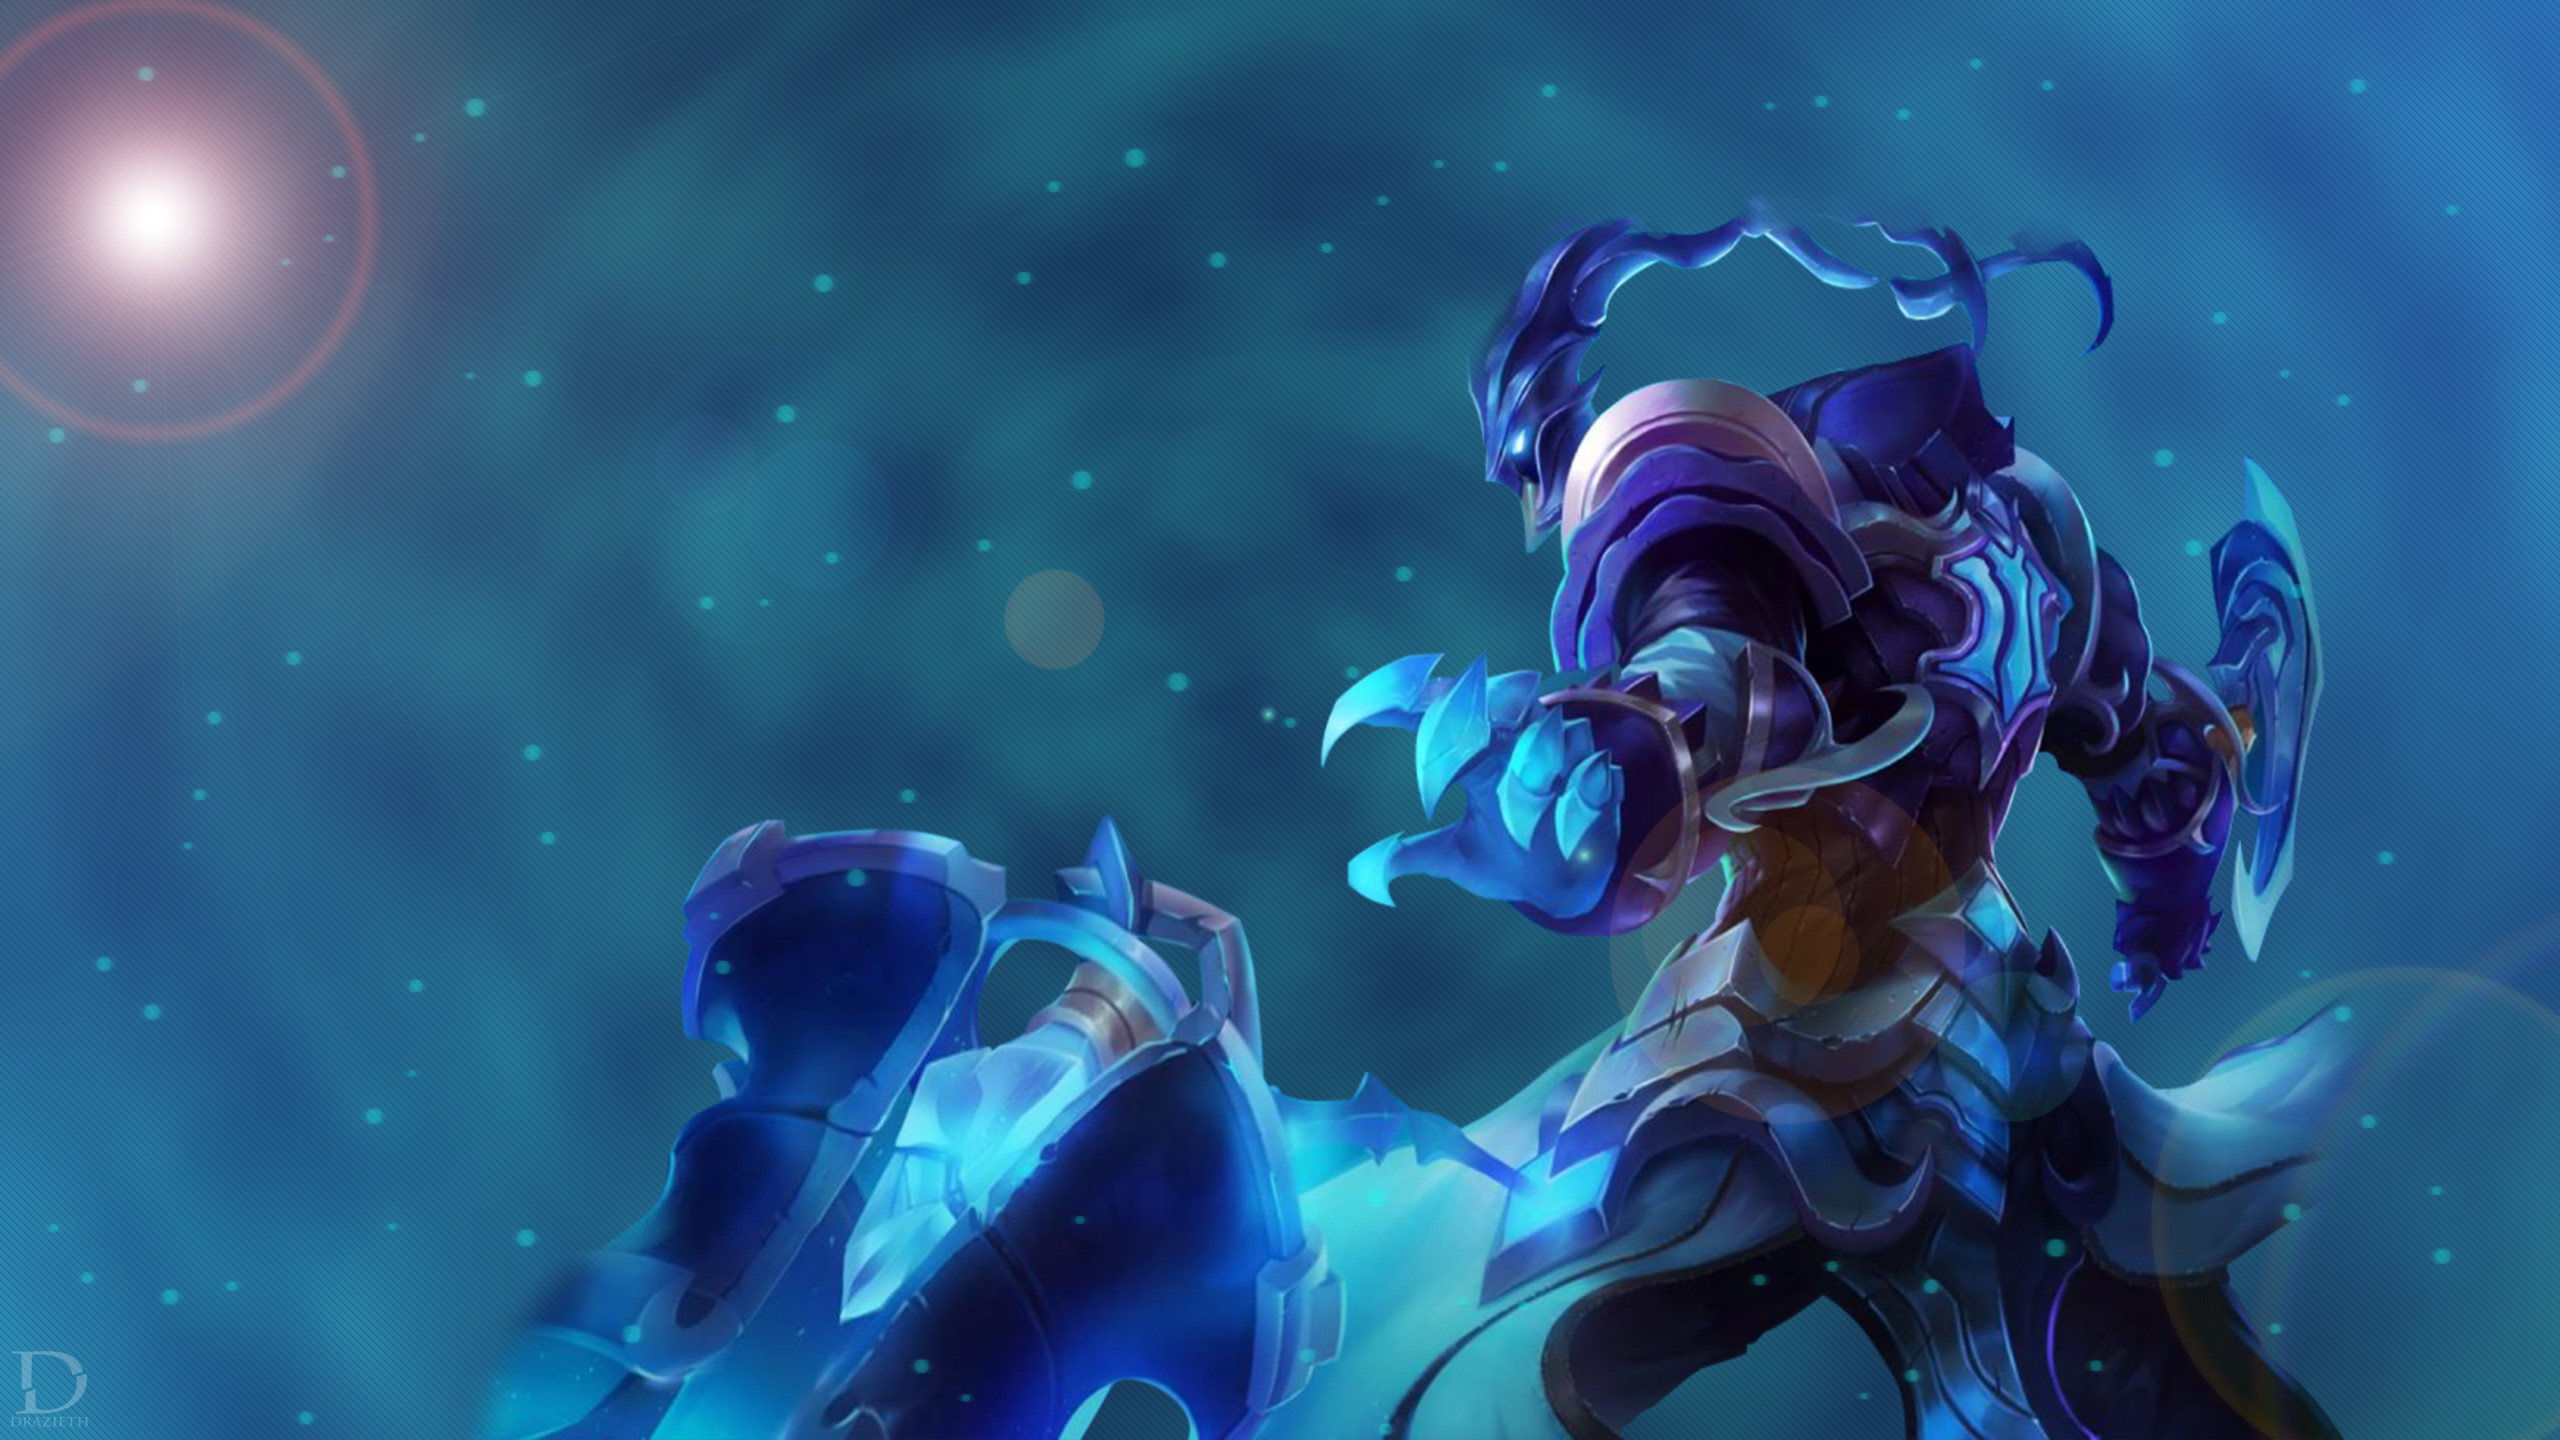 2560x1440 Championship Thresh by Drazieth HD Wallpaper Fan Art Artwork League of  Legends lol